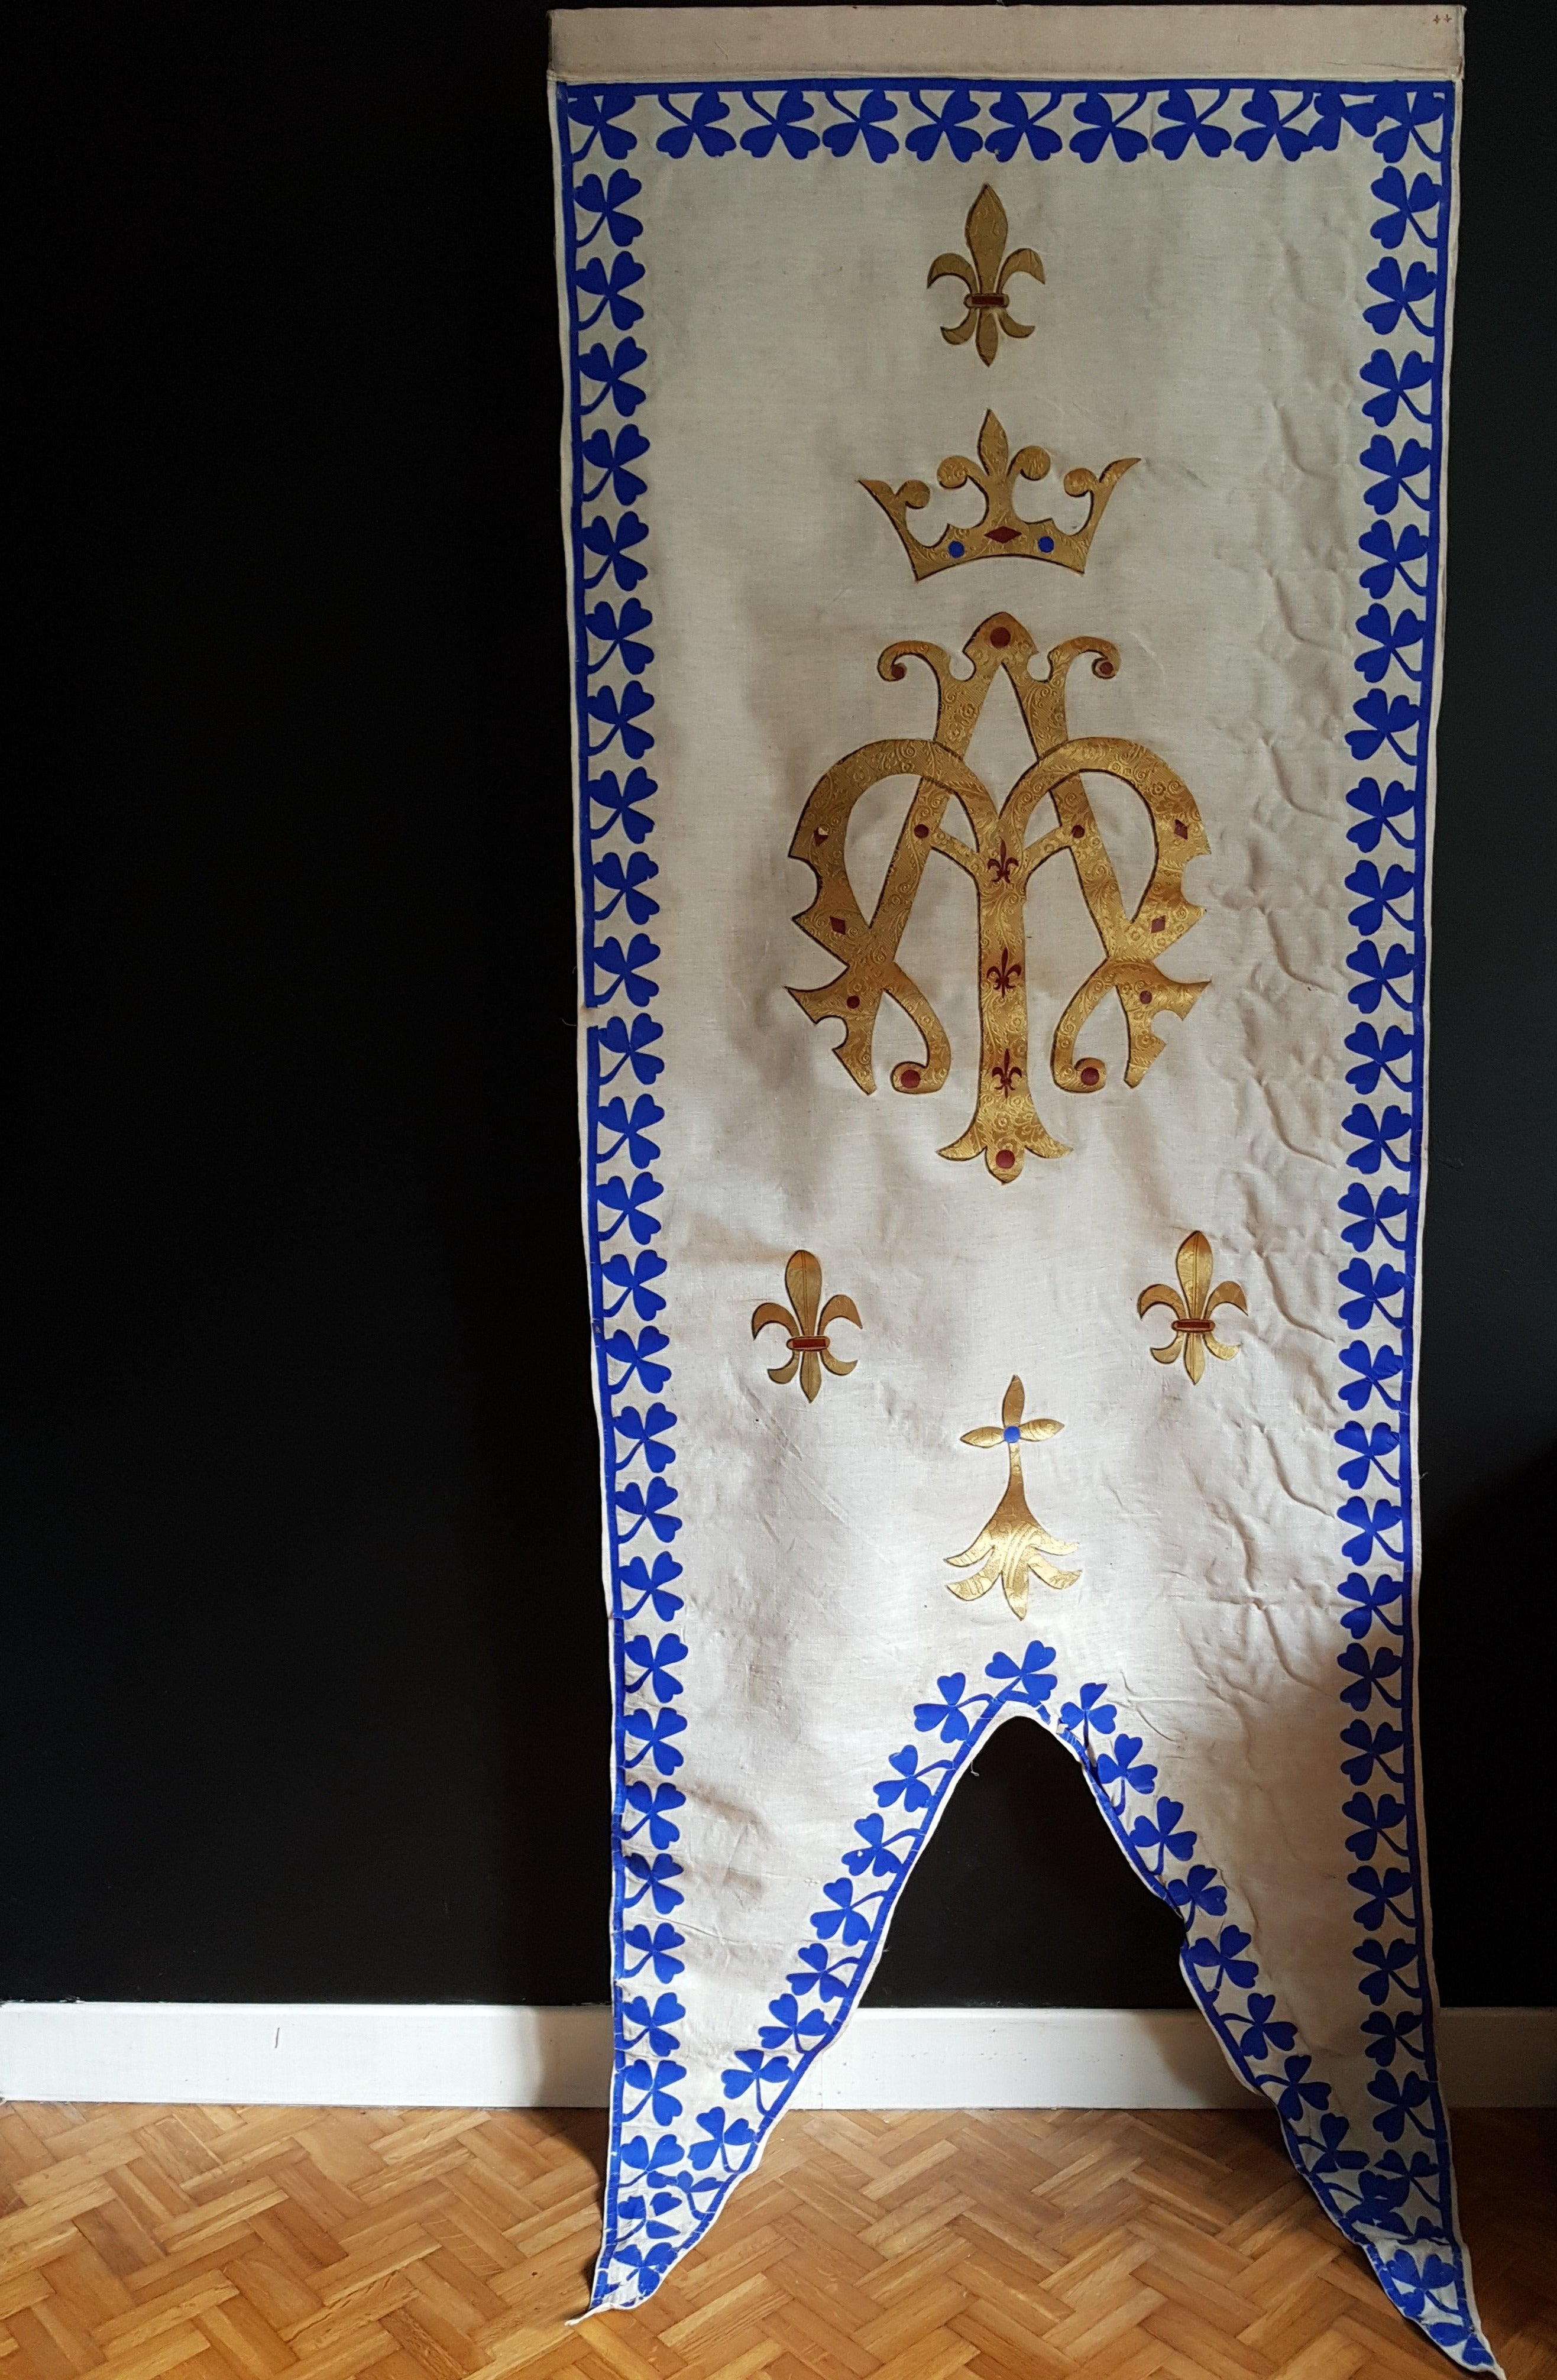 Ave Maria Notre Dame Mary blue white and gold fleur de lis border pennant Vintage Antique red procession banner - catholic church ceremonial display